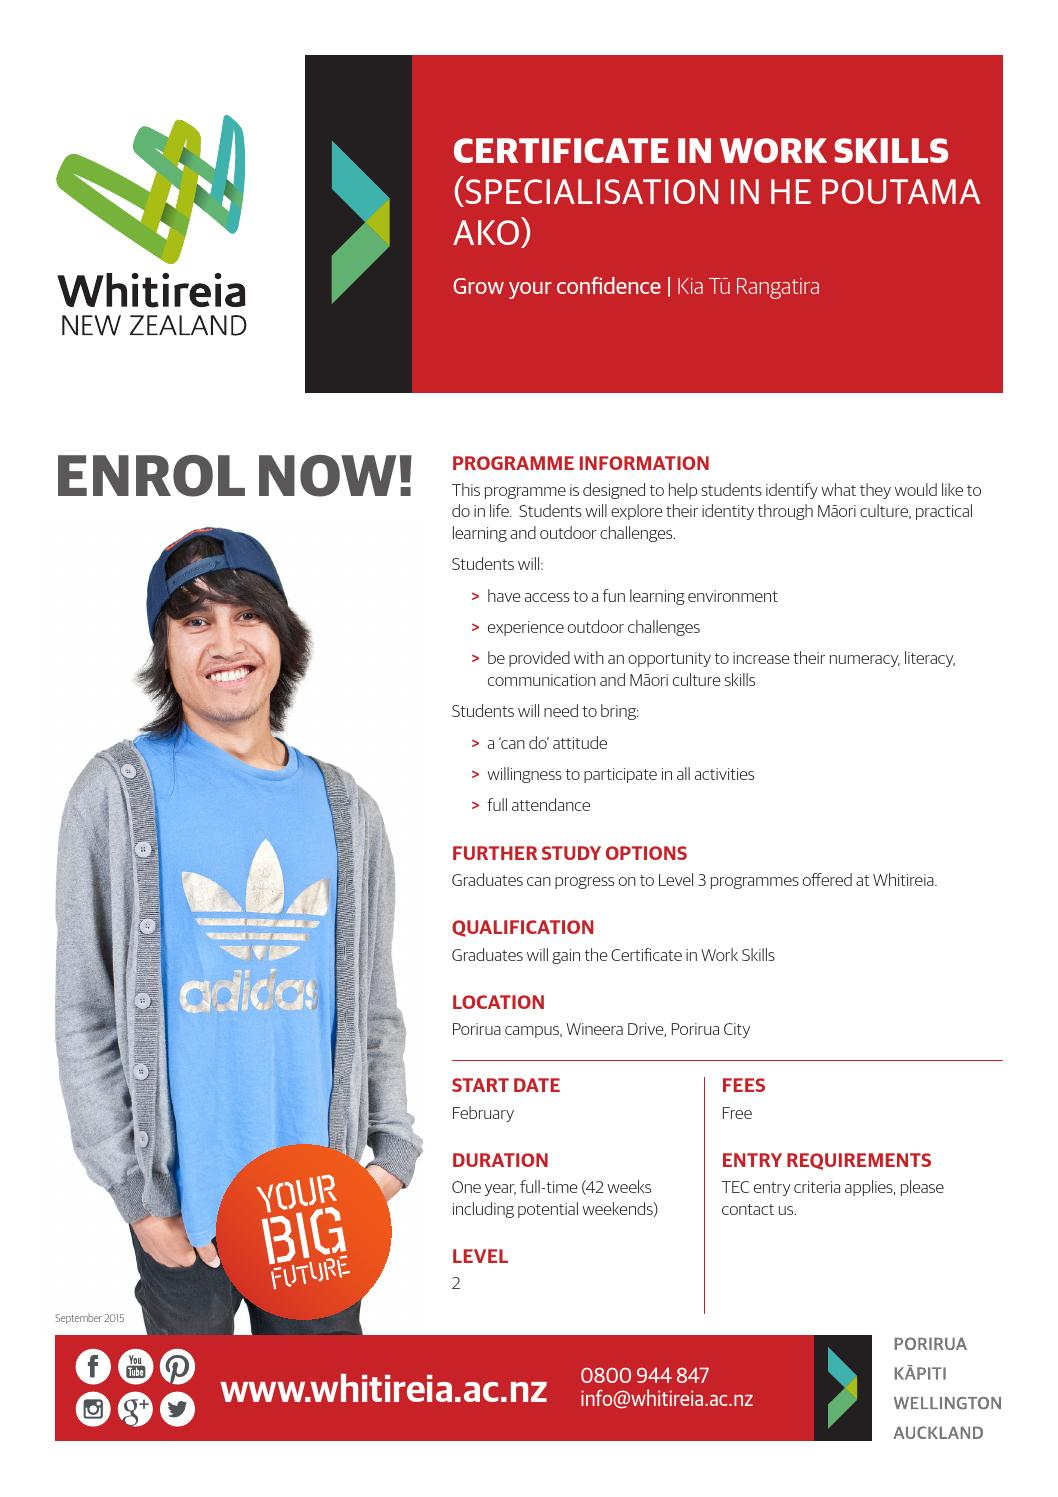 Certificate in work skills he poutama ako by whitireia new certificate in work skills he poutama ako by whitireia new zealand issuu xflitez Image collections